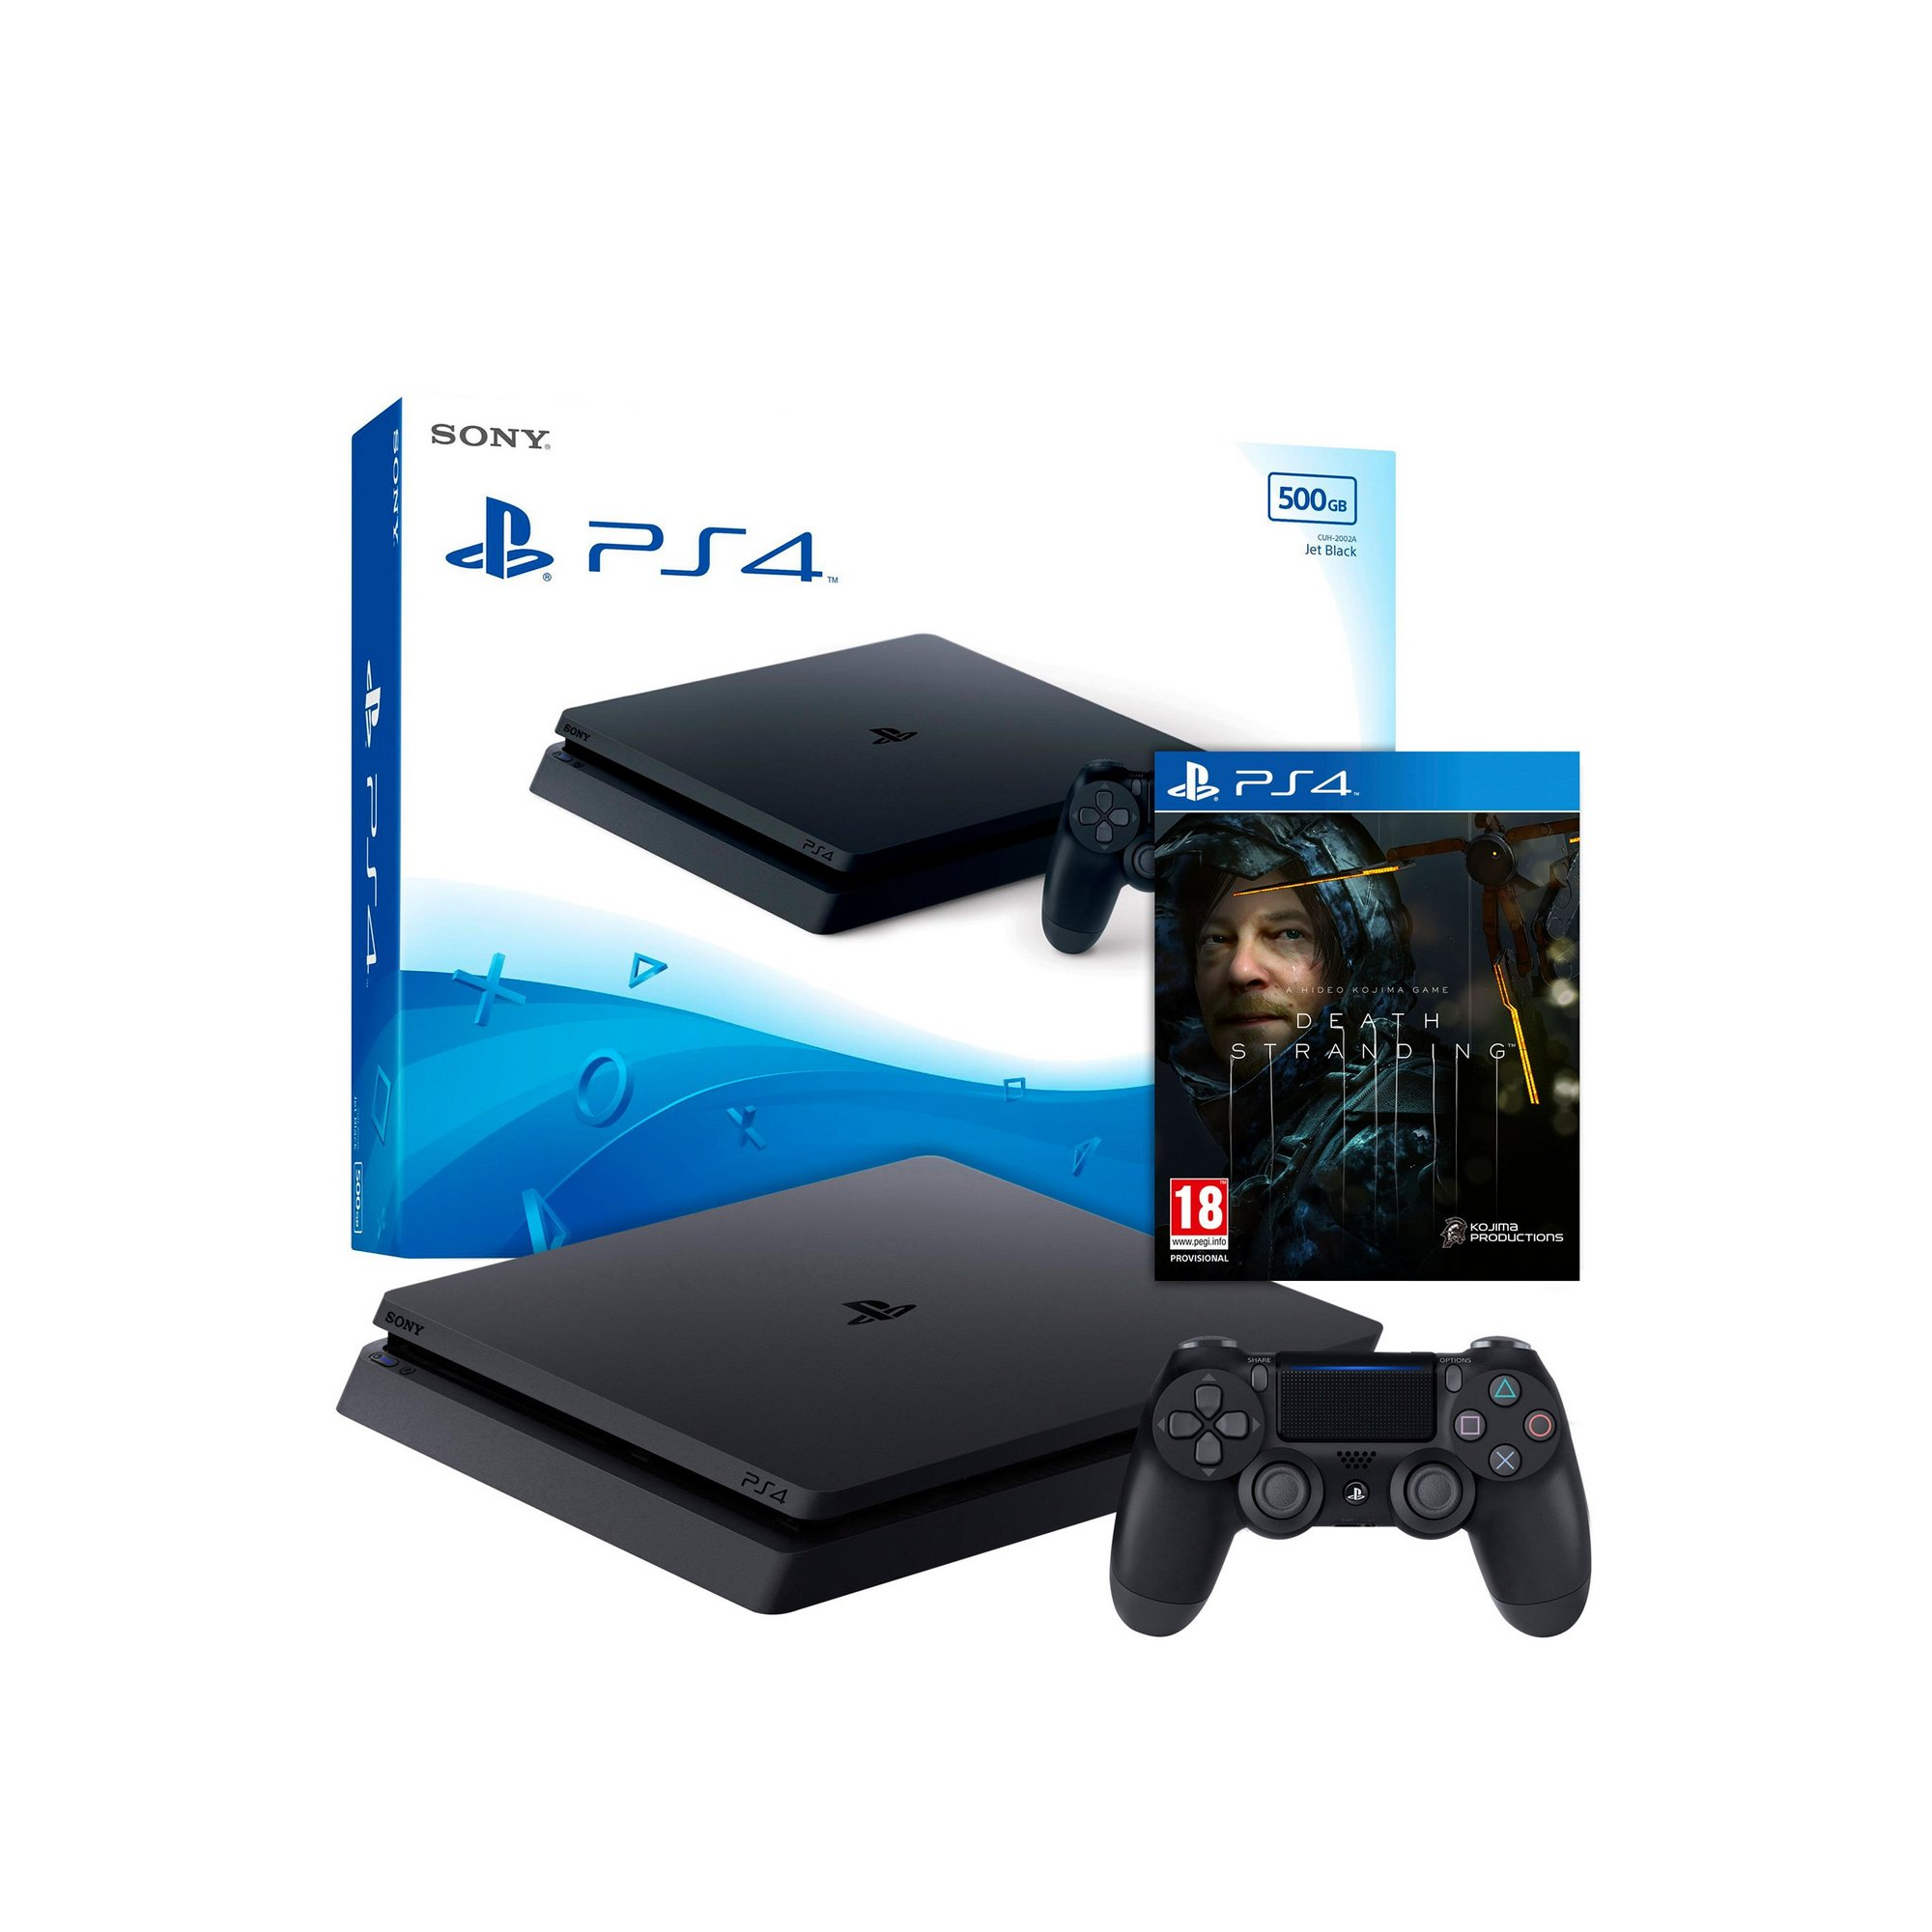 Image of 500GB Black PS4 Console with Death Stranding